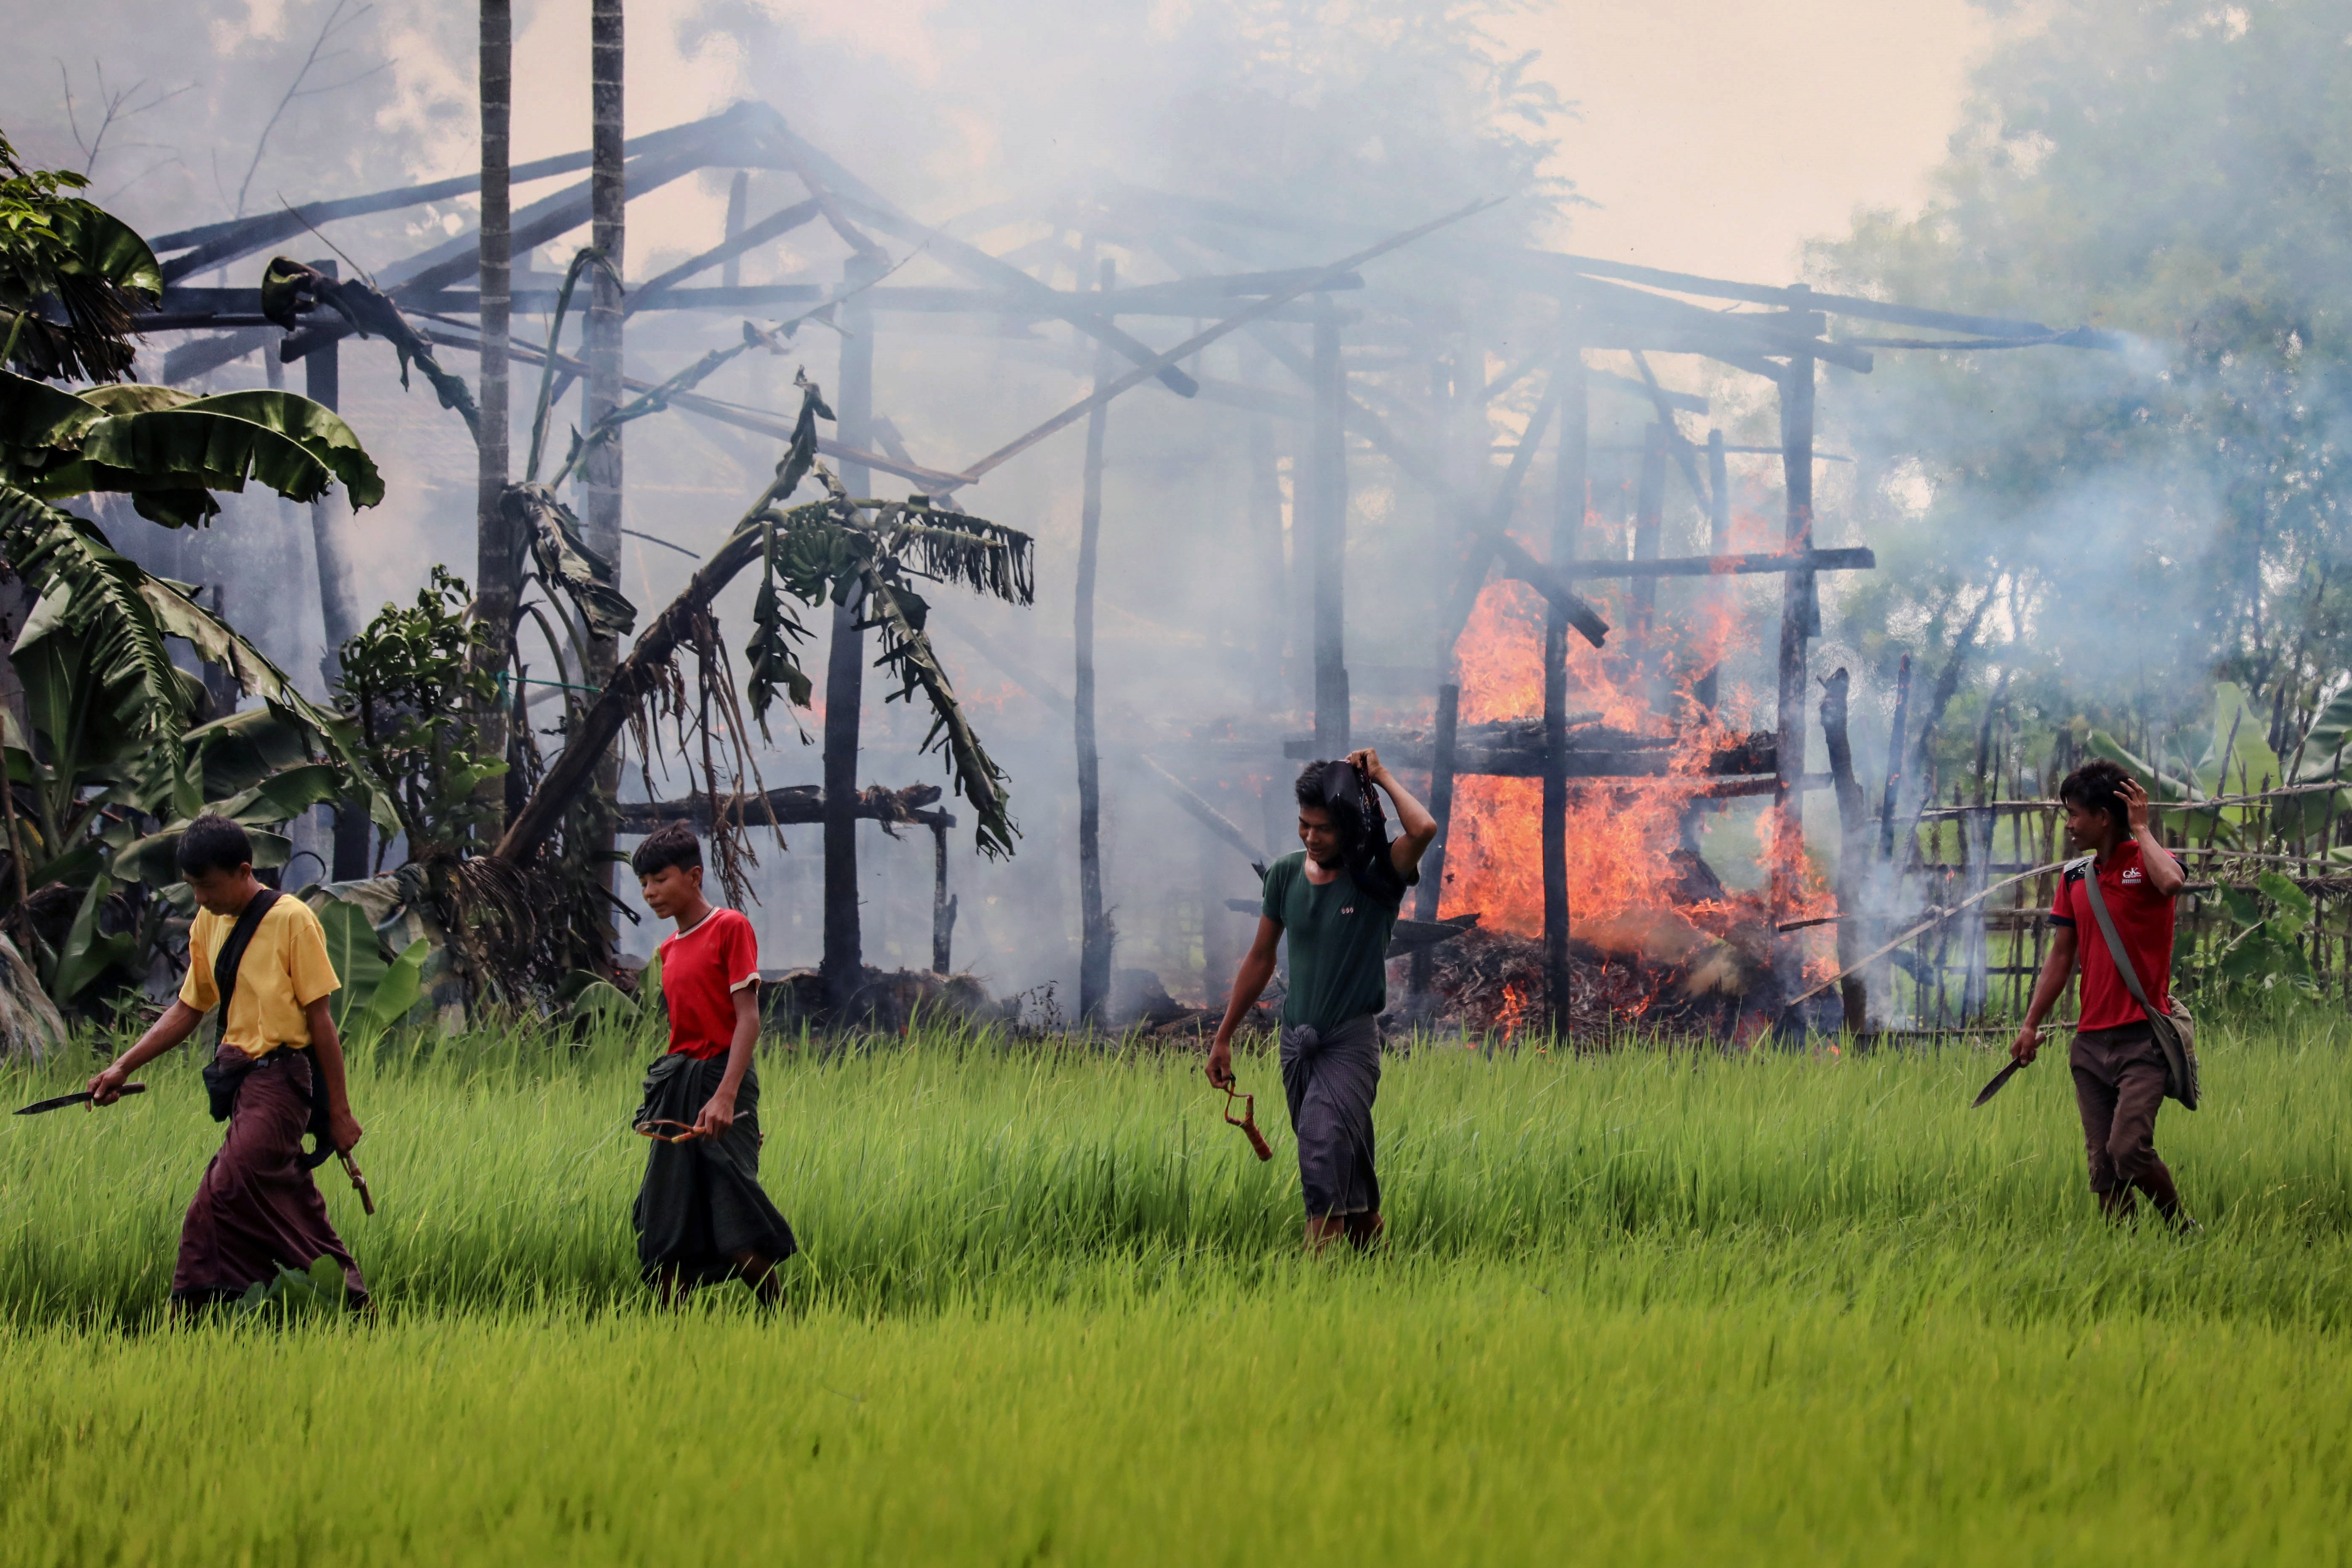 Unidentified men carry knives and slingshots as they walk past a burning house in Gawdu Tharya village near Maungdaw in Rakhine state in northern Myanmar in 2017. Photo: AFP